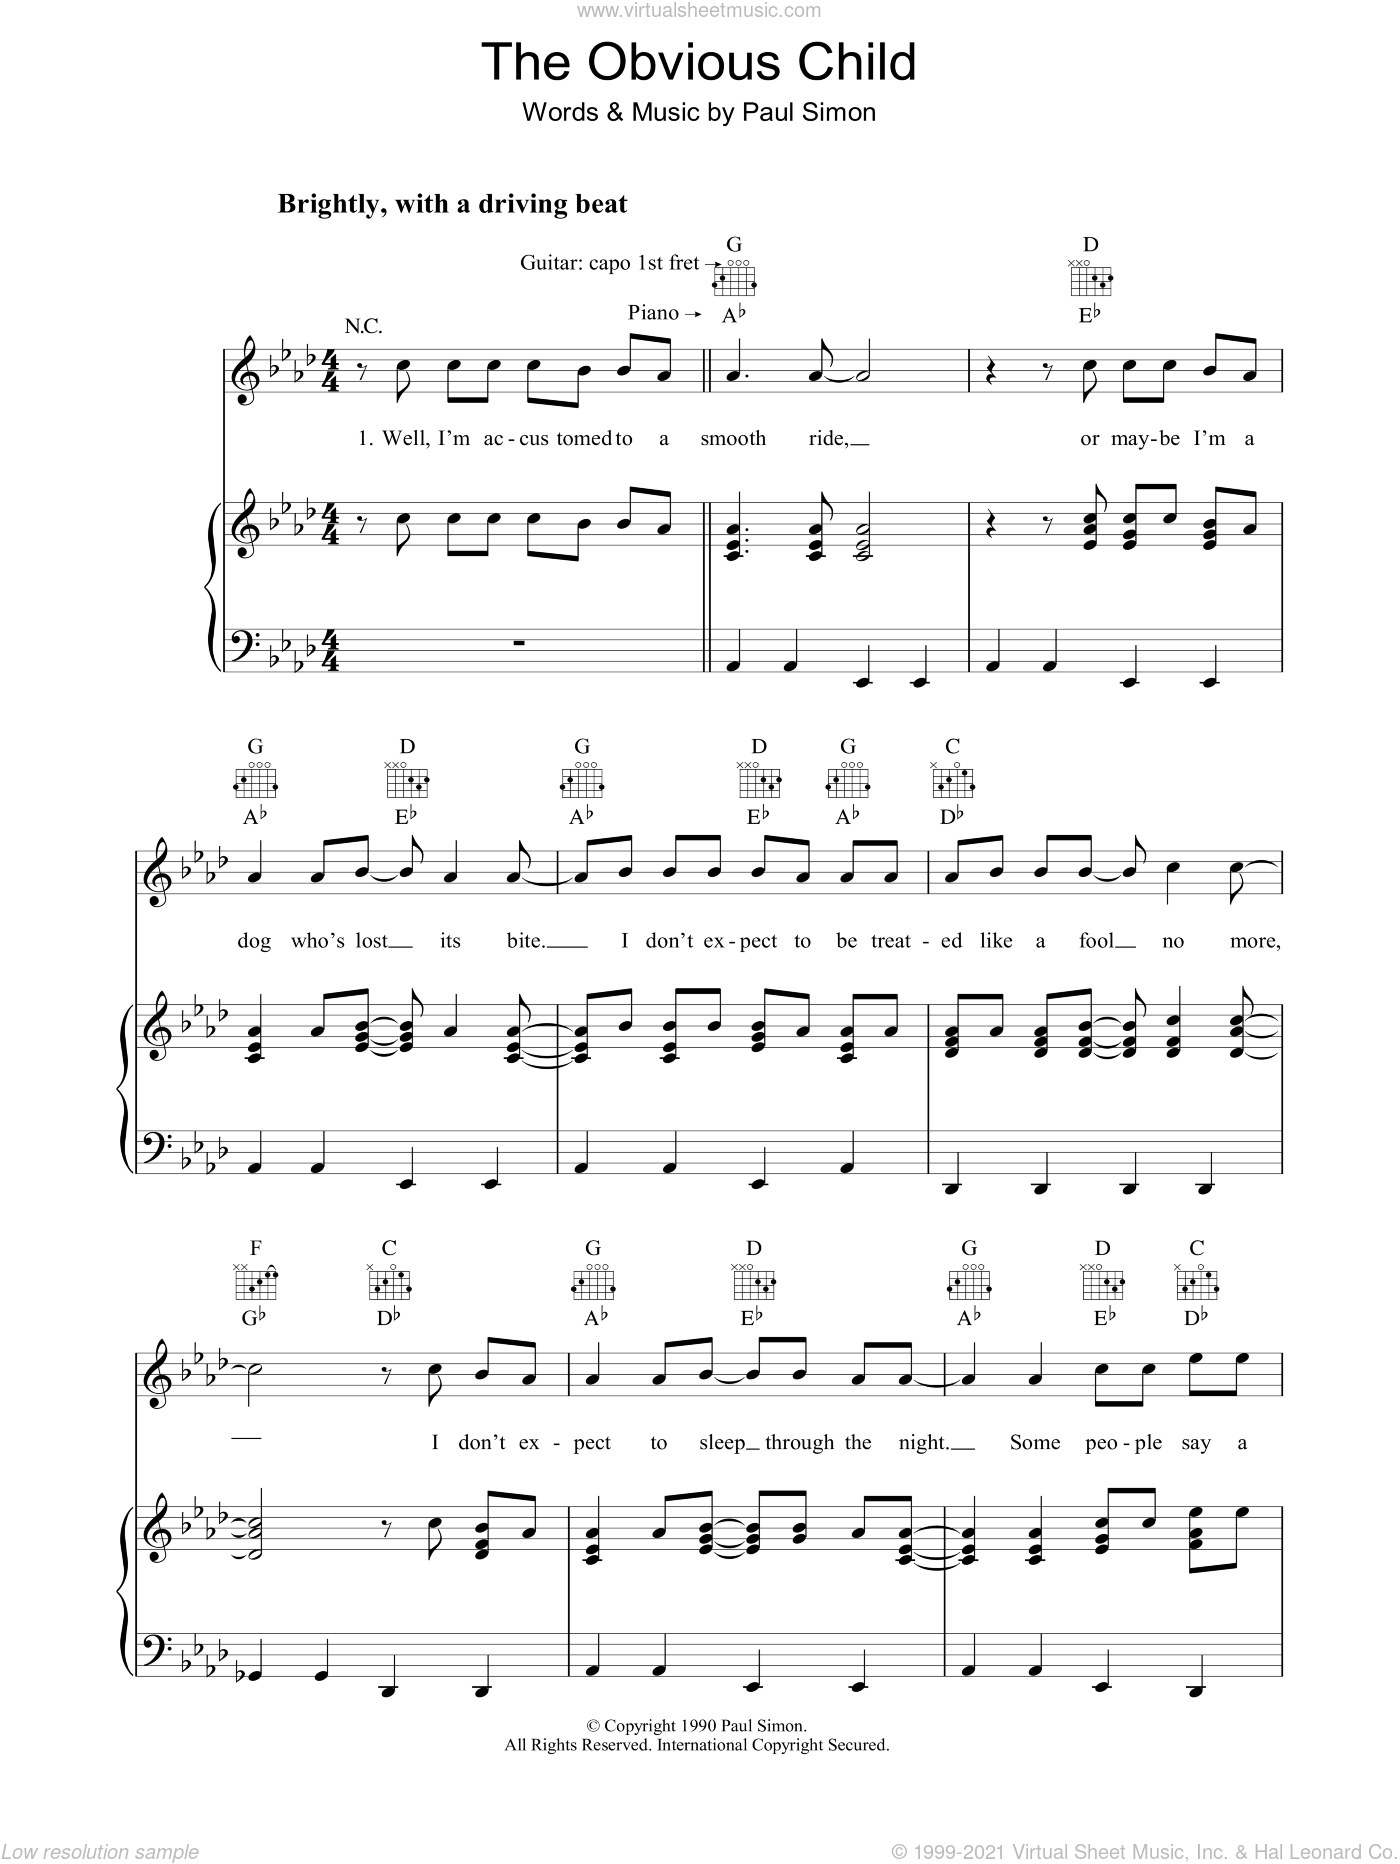 The Obvious Child sheet music for voice, piano or guitar by Paul Simon